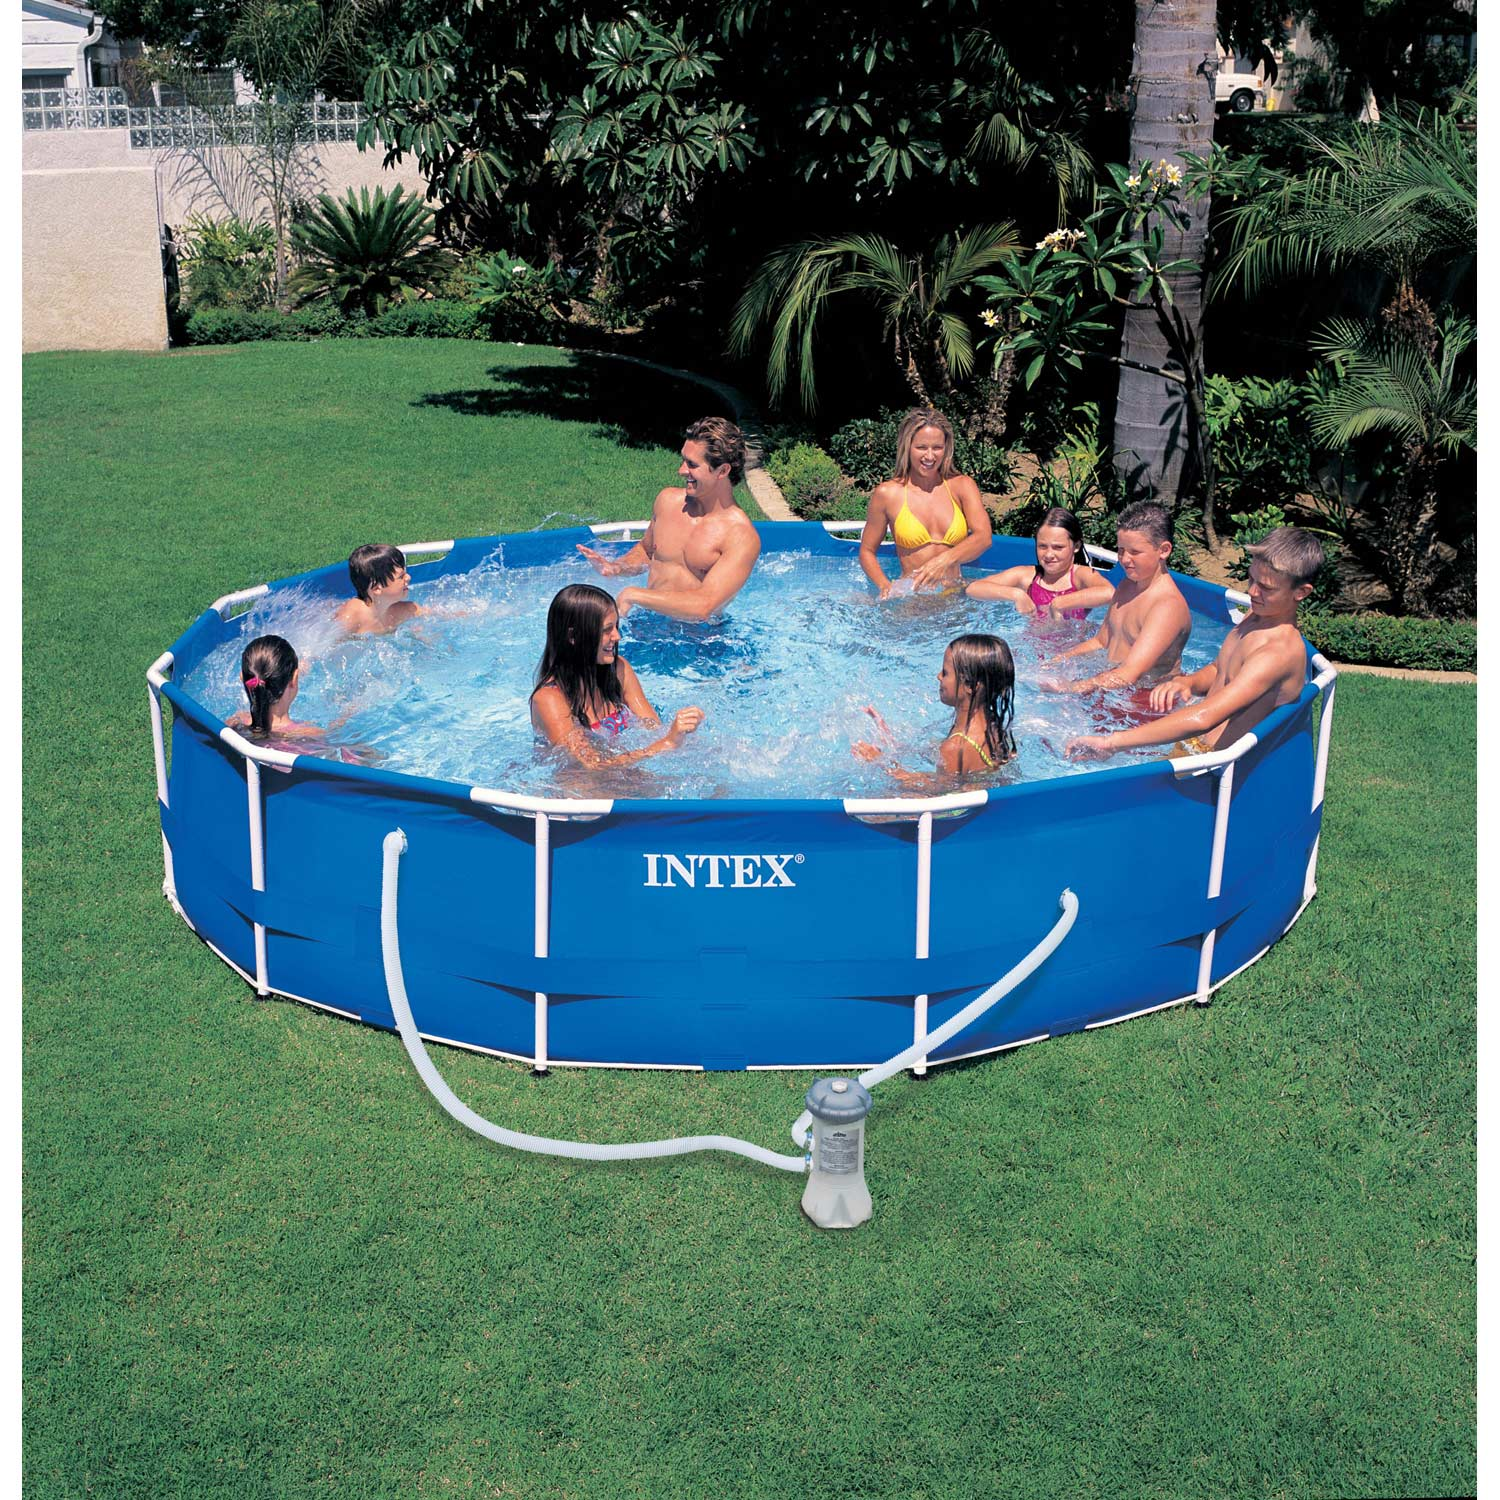 Piscine hors sol autoportante tubulaire metal frame intex for Prix piscine intex